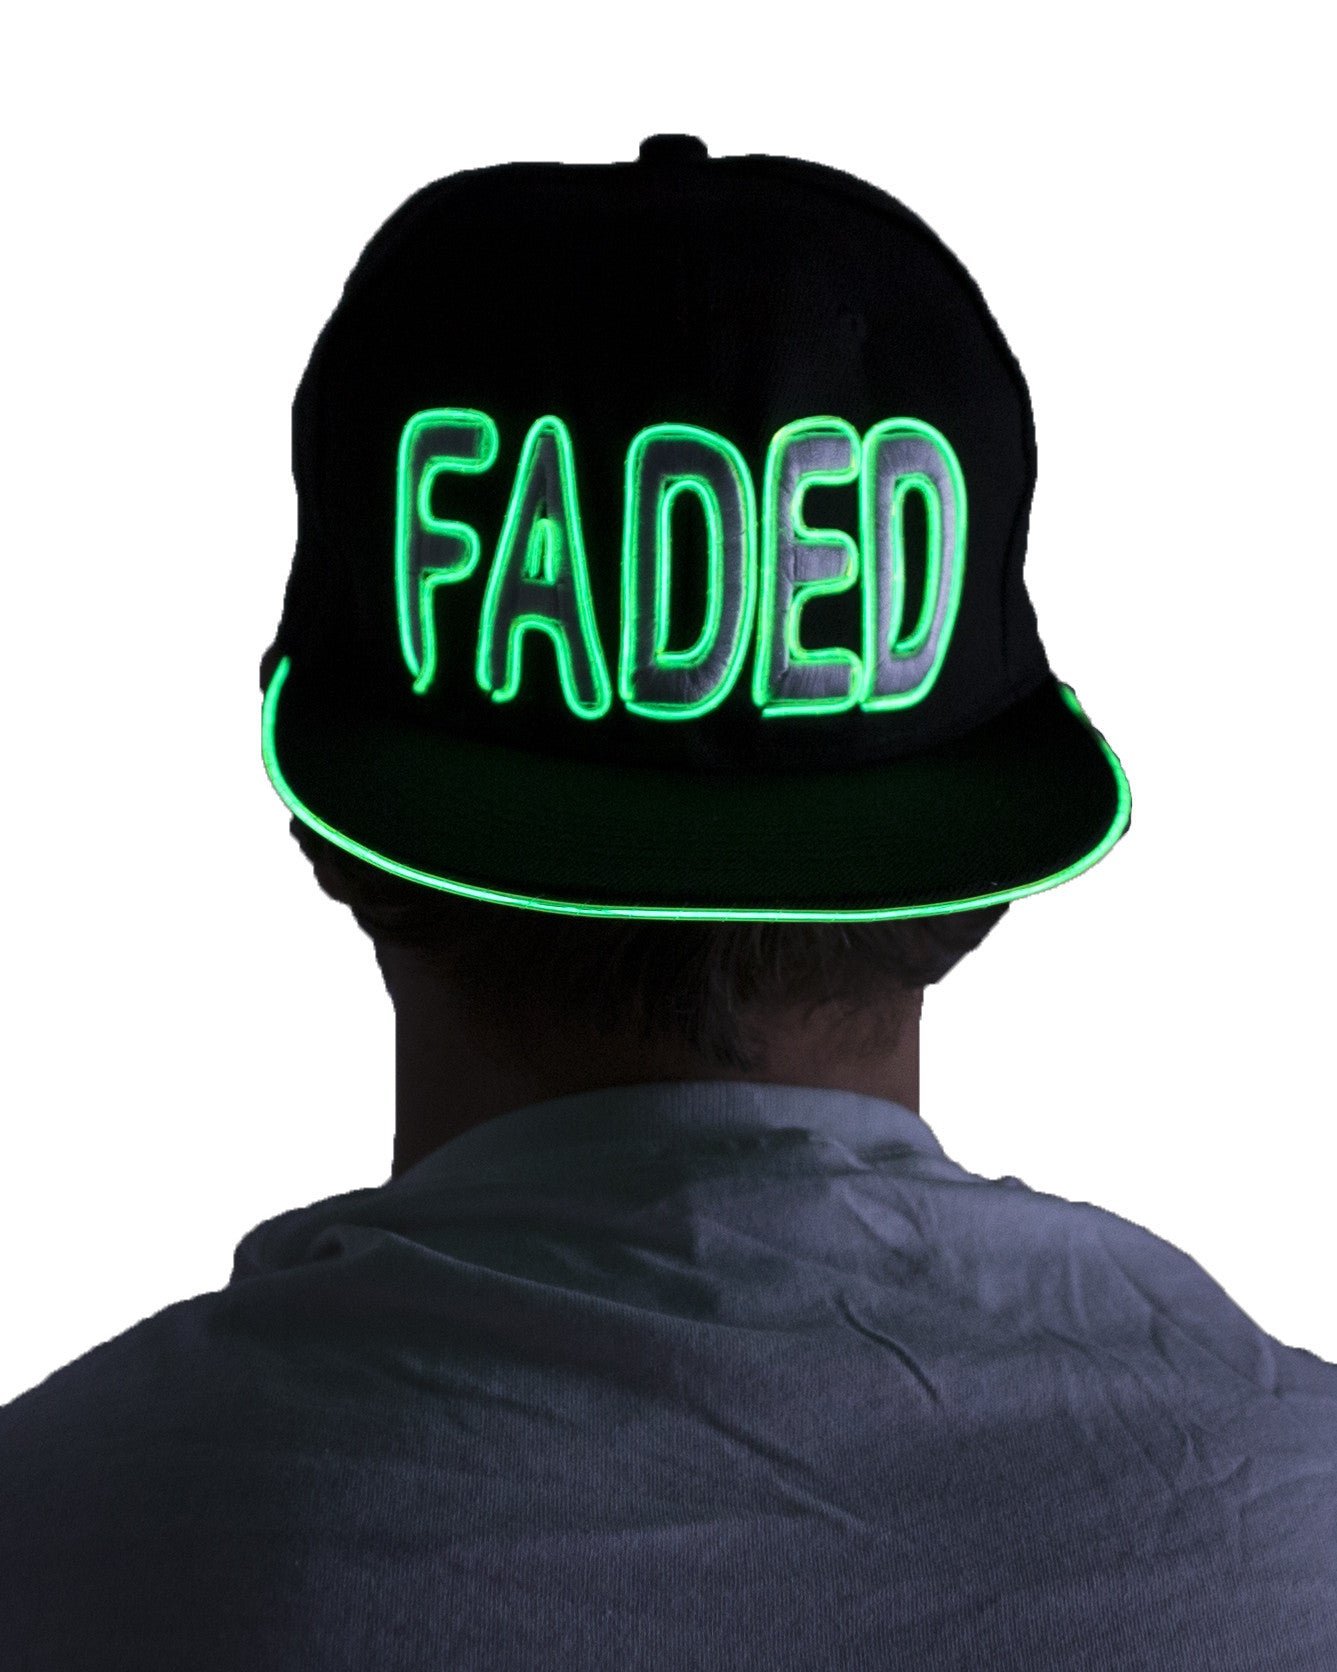 Light Up Hat - Faded - Electric Styles | World's Number 1 Light Up Shoe Store - {product_type}} -  - 6